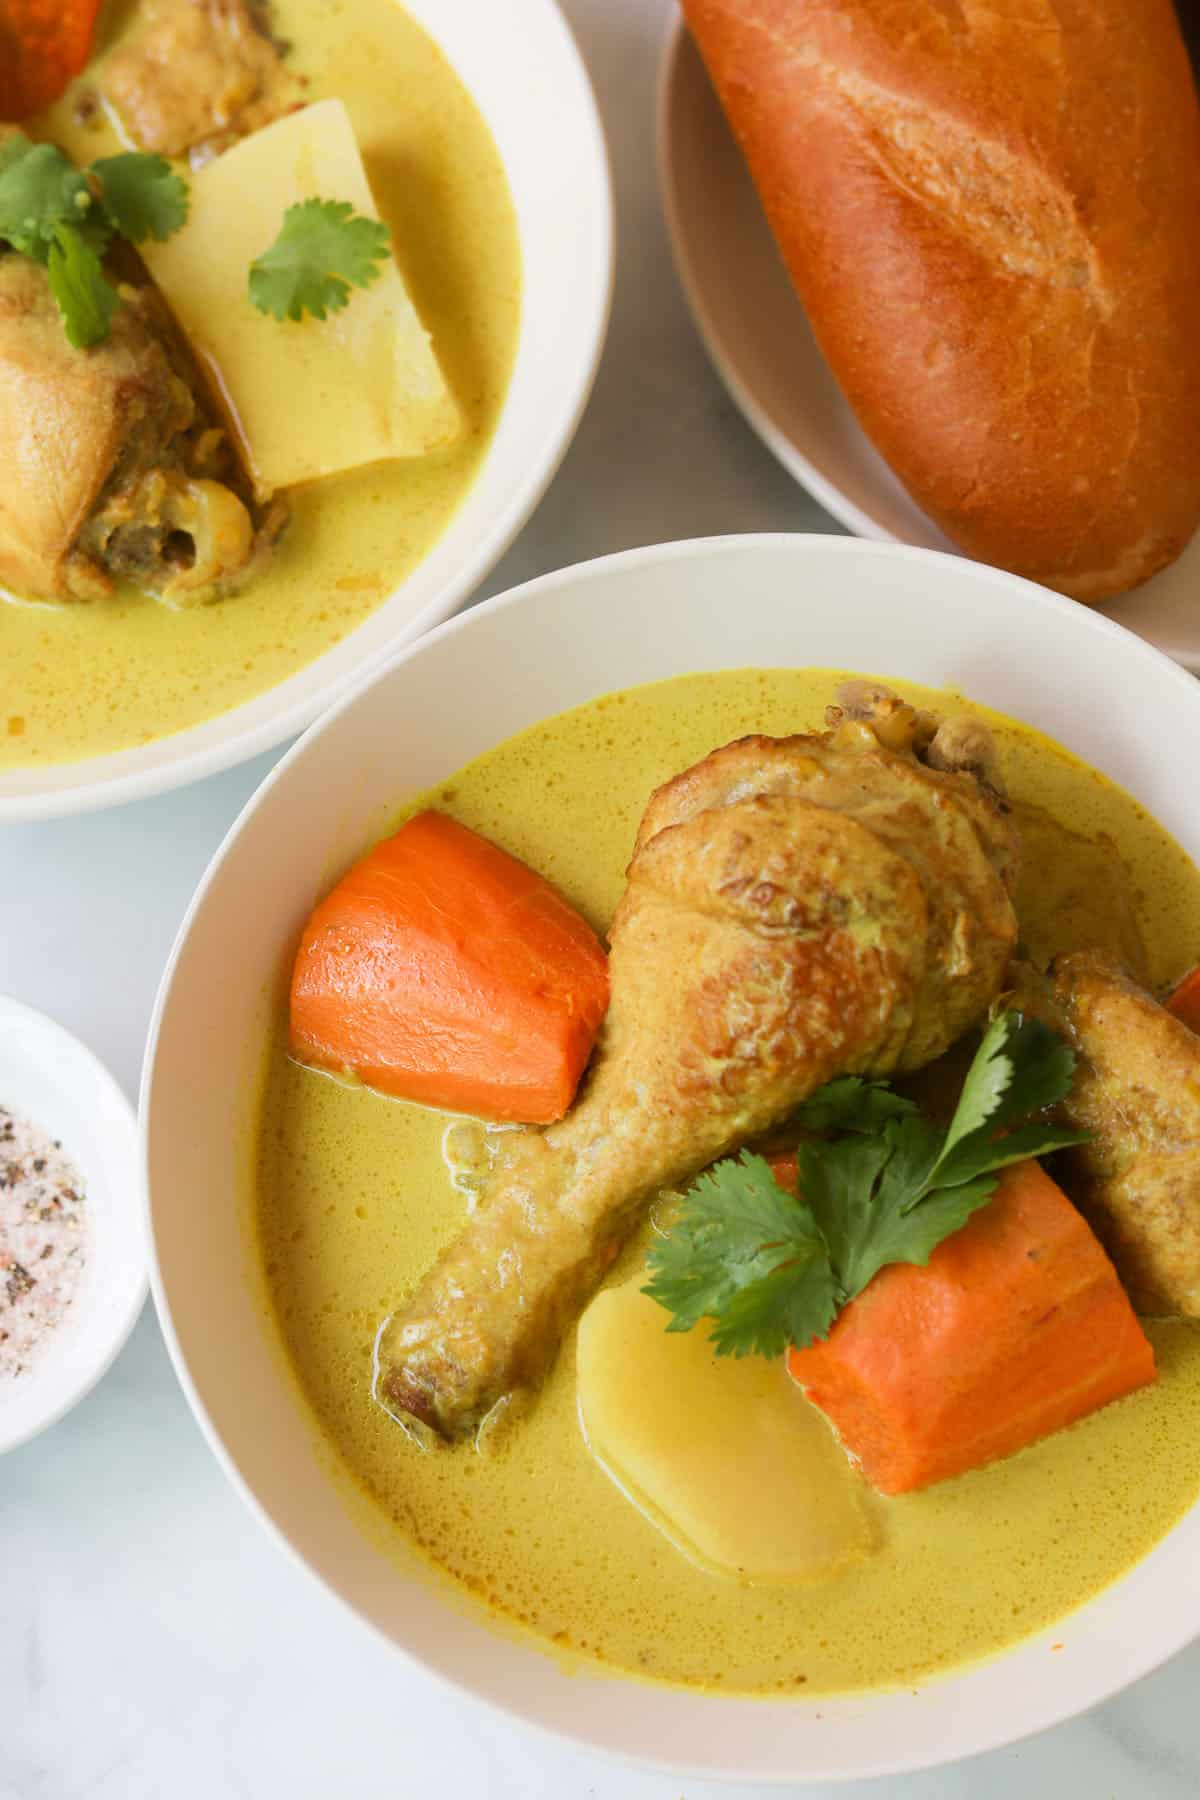 Yellow chicken curry with potatoes and carrots in a bowl.